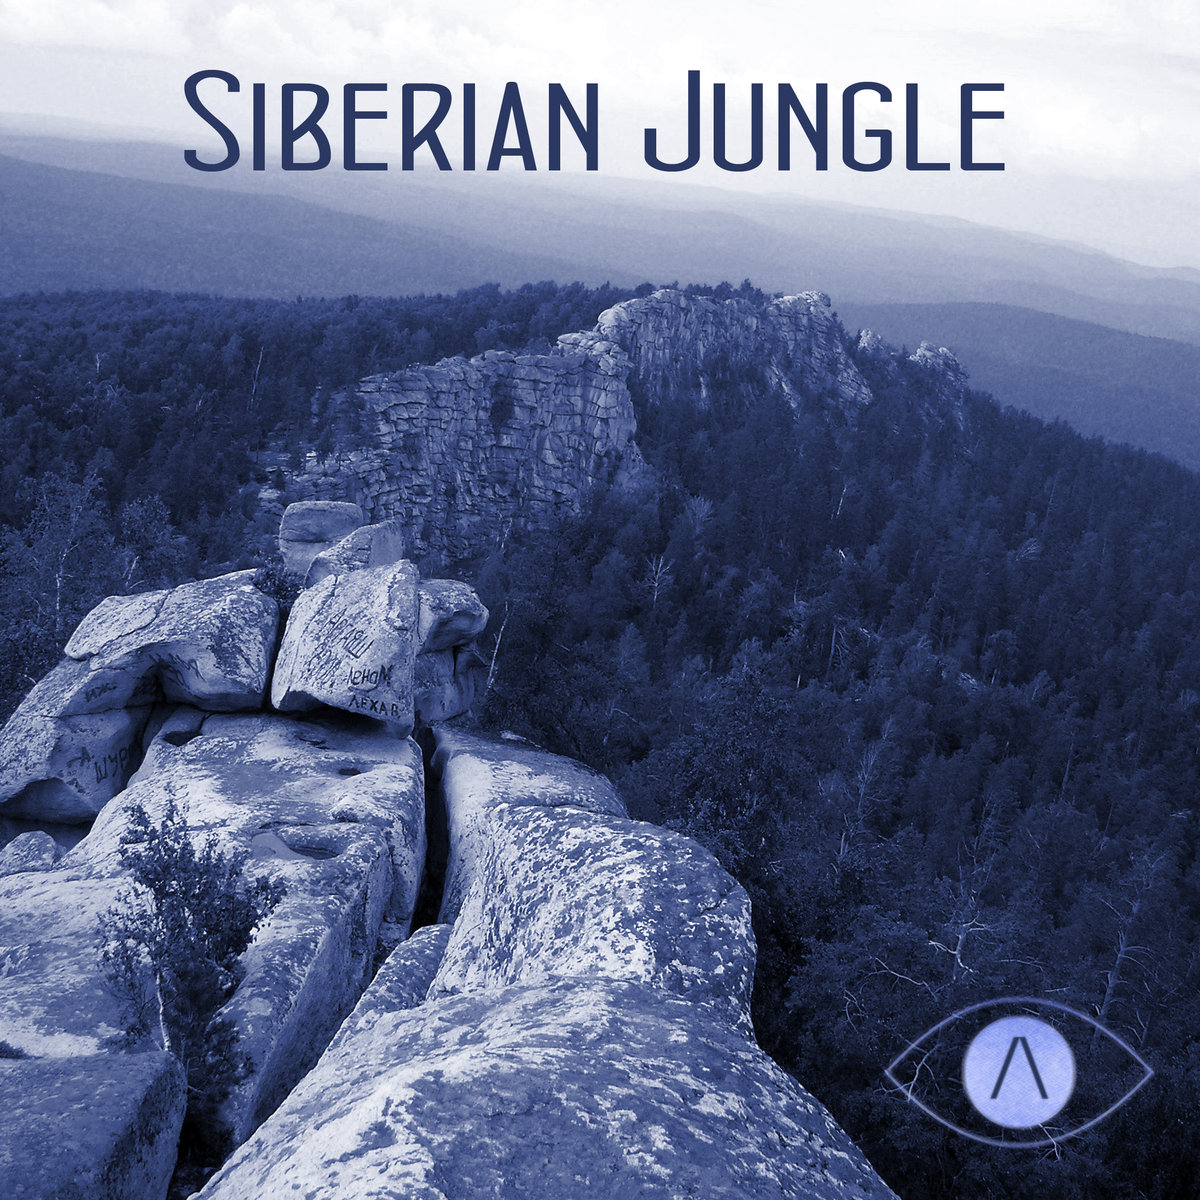 U-dahn - Cray @ 'Siberian Jungle - Volume 2' album (electronic, ambient)